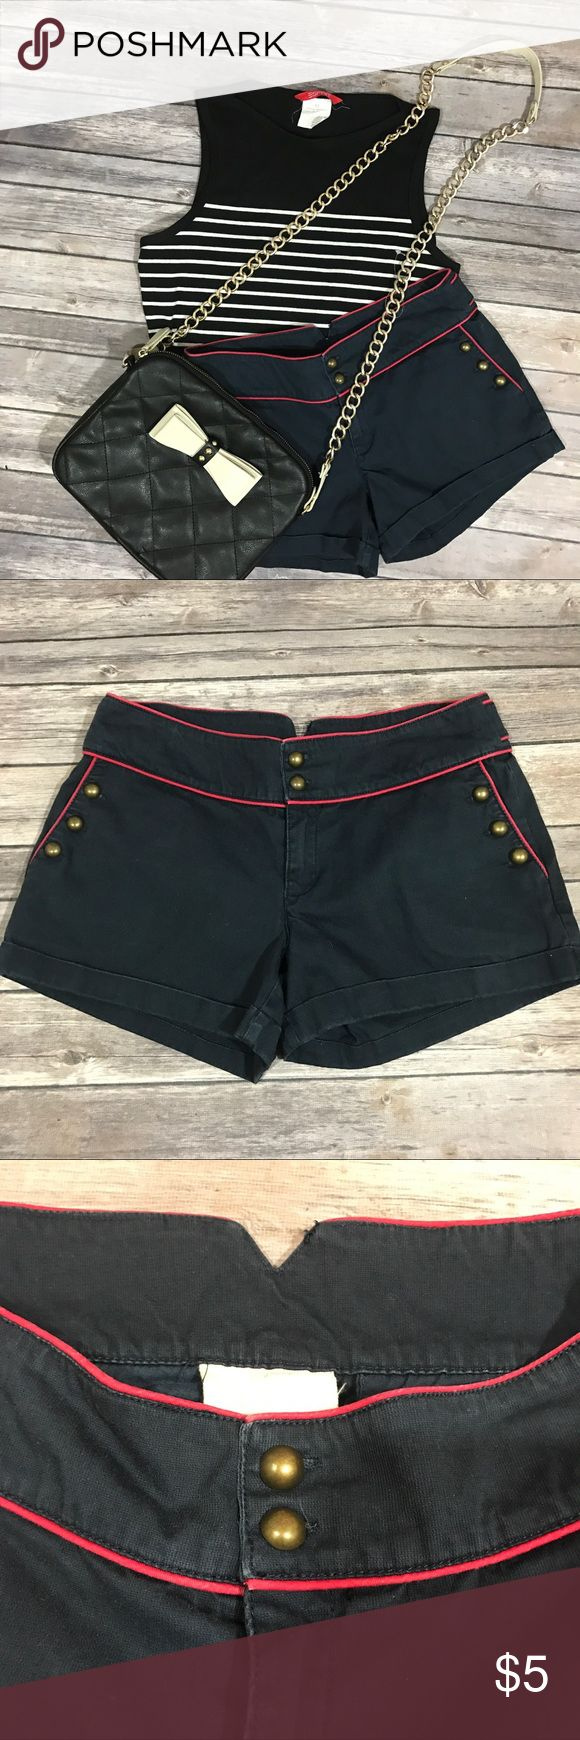 Quicksilver nautical shorts Red and dark blue nautical shorts from quicksilver. No holes or stains minor color fade, overall in great condition. Says size 3 waist measures to 28, material is non stretchy. Quiksilver Shorts